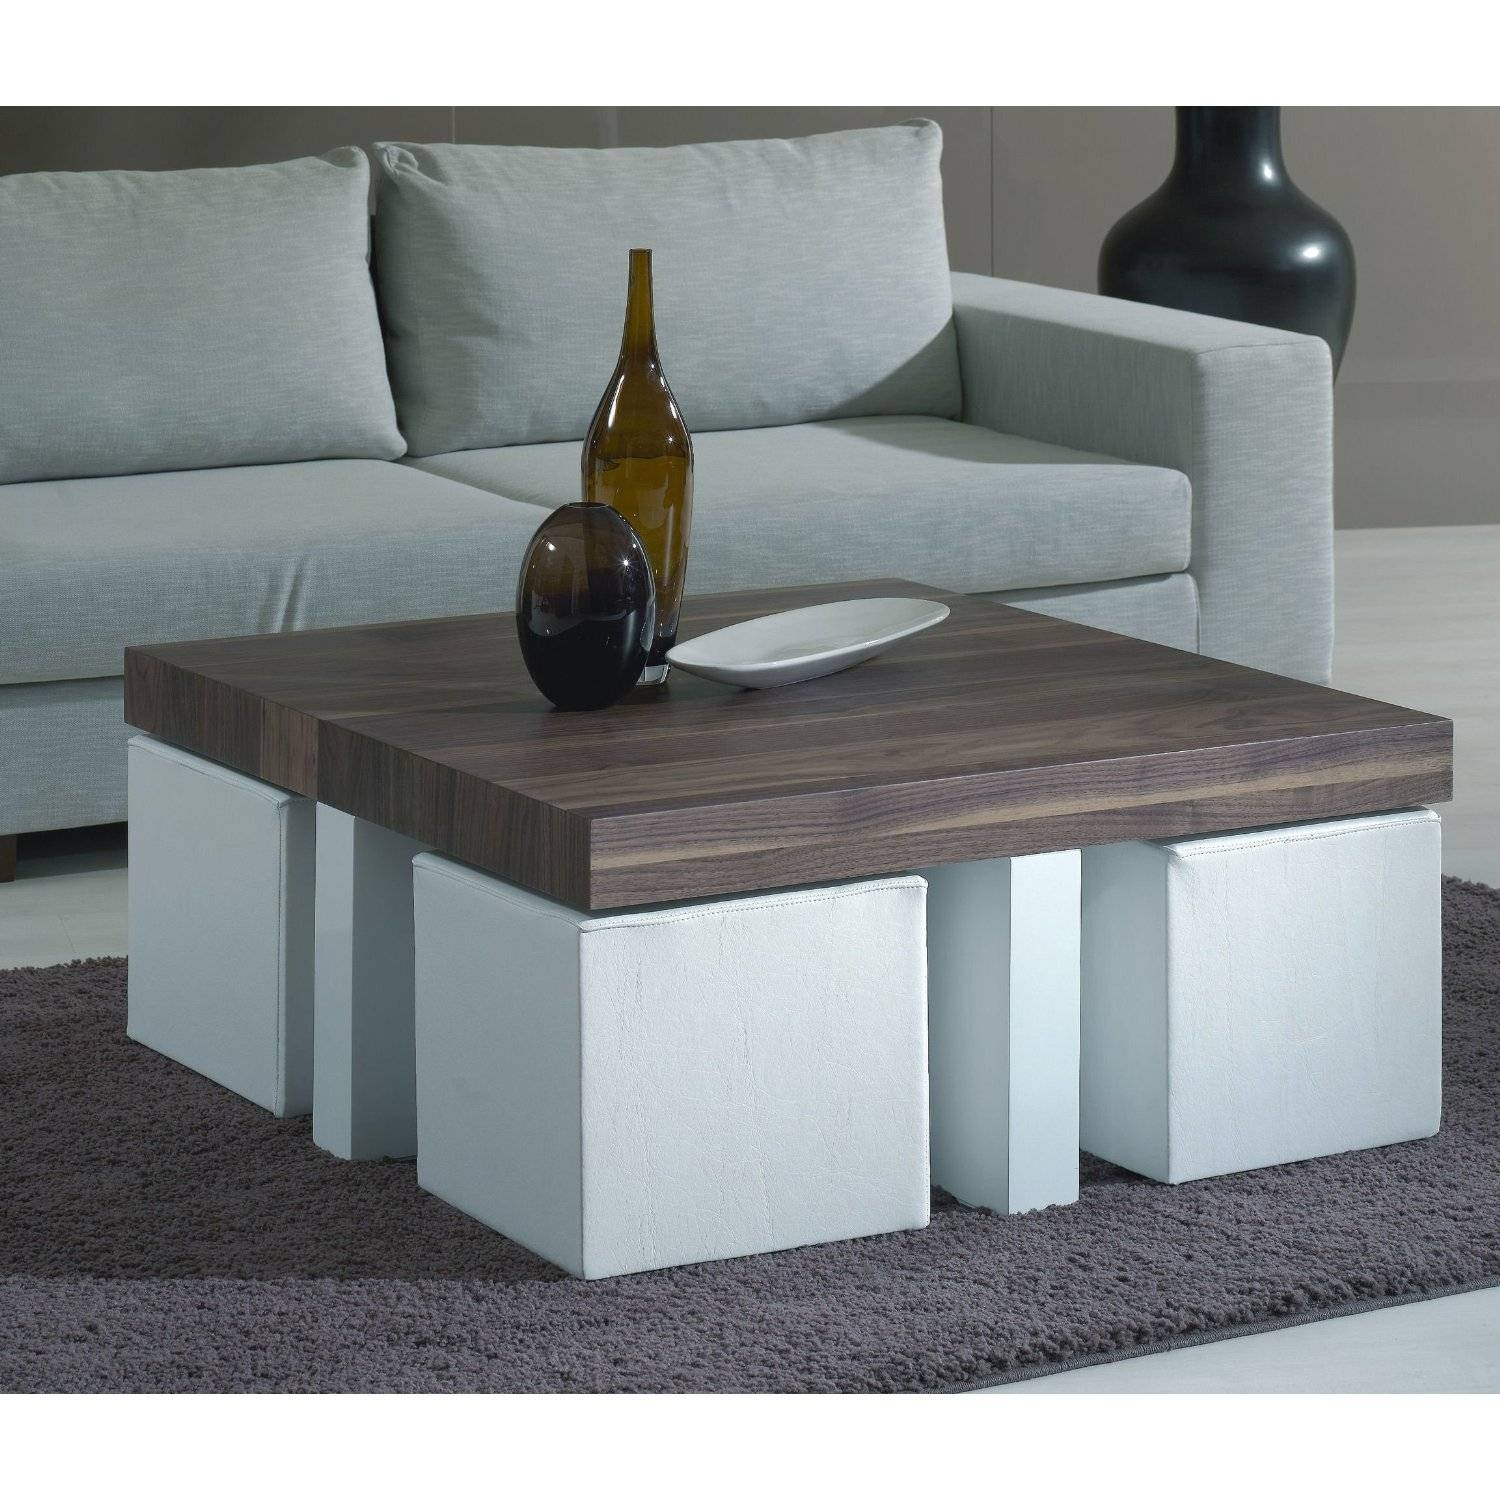 Coffee Table With Chairs Underneath | Coffee Tables Decoration Regarding Coffee Tables With Seating And Storage (View 4 of 30)